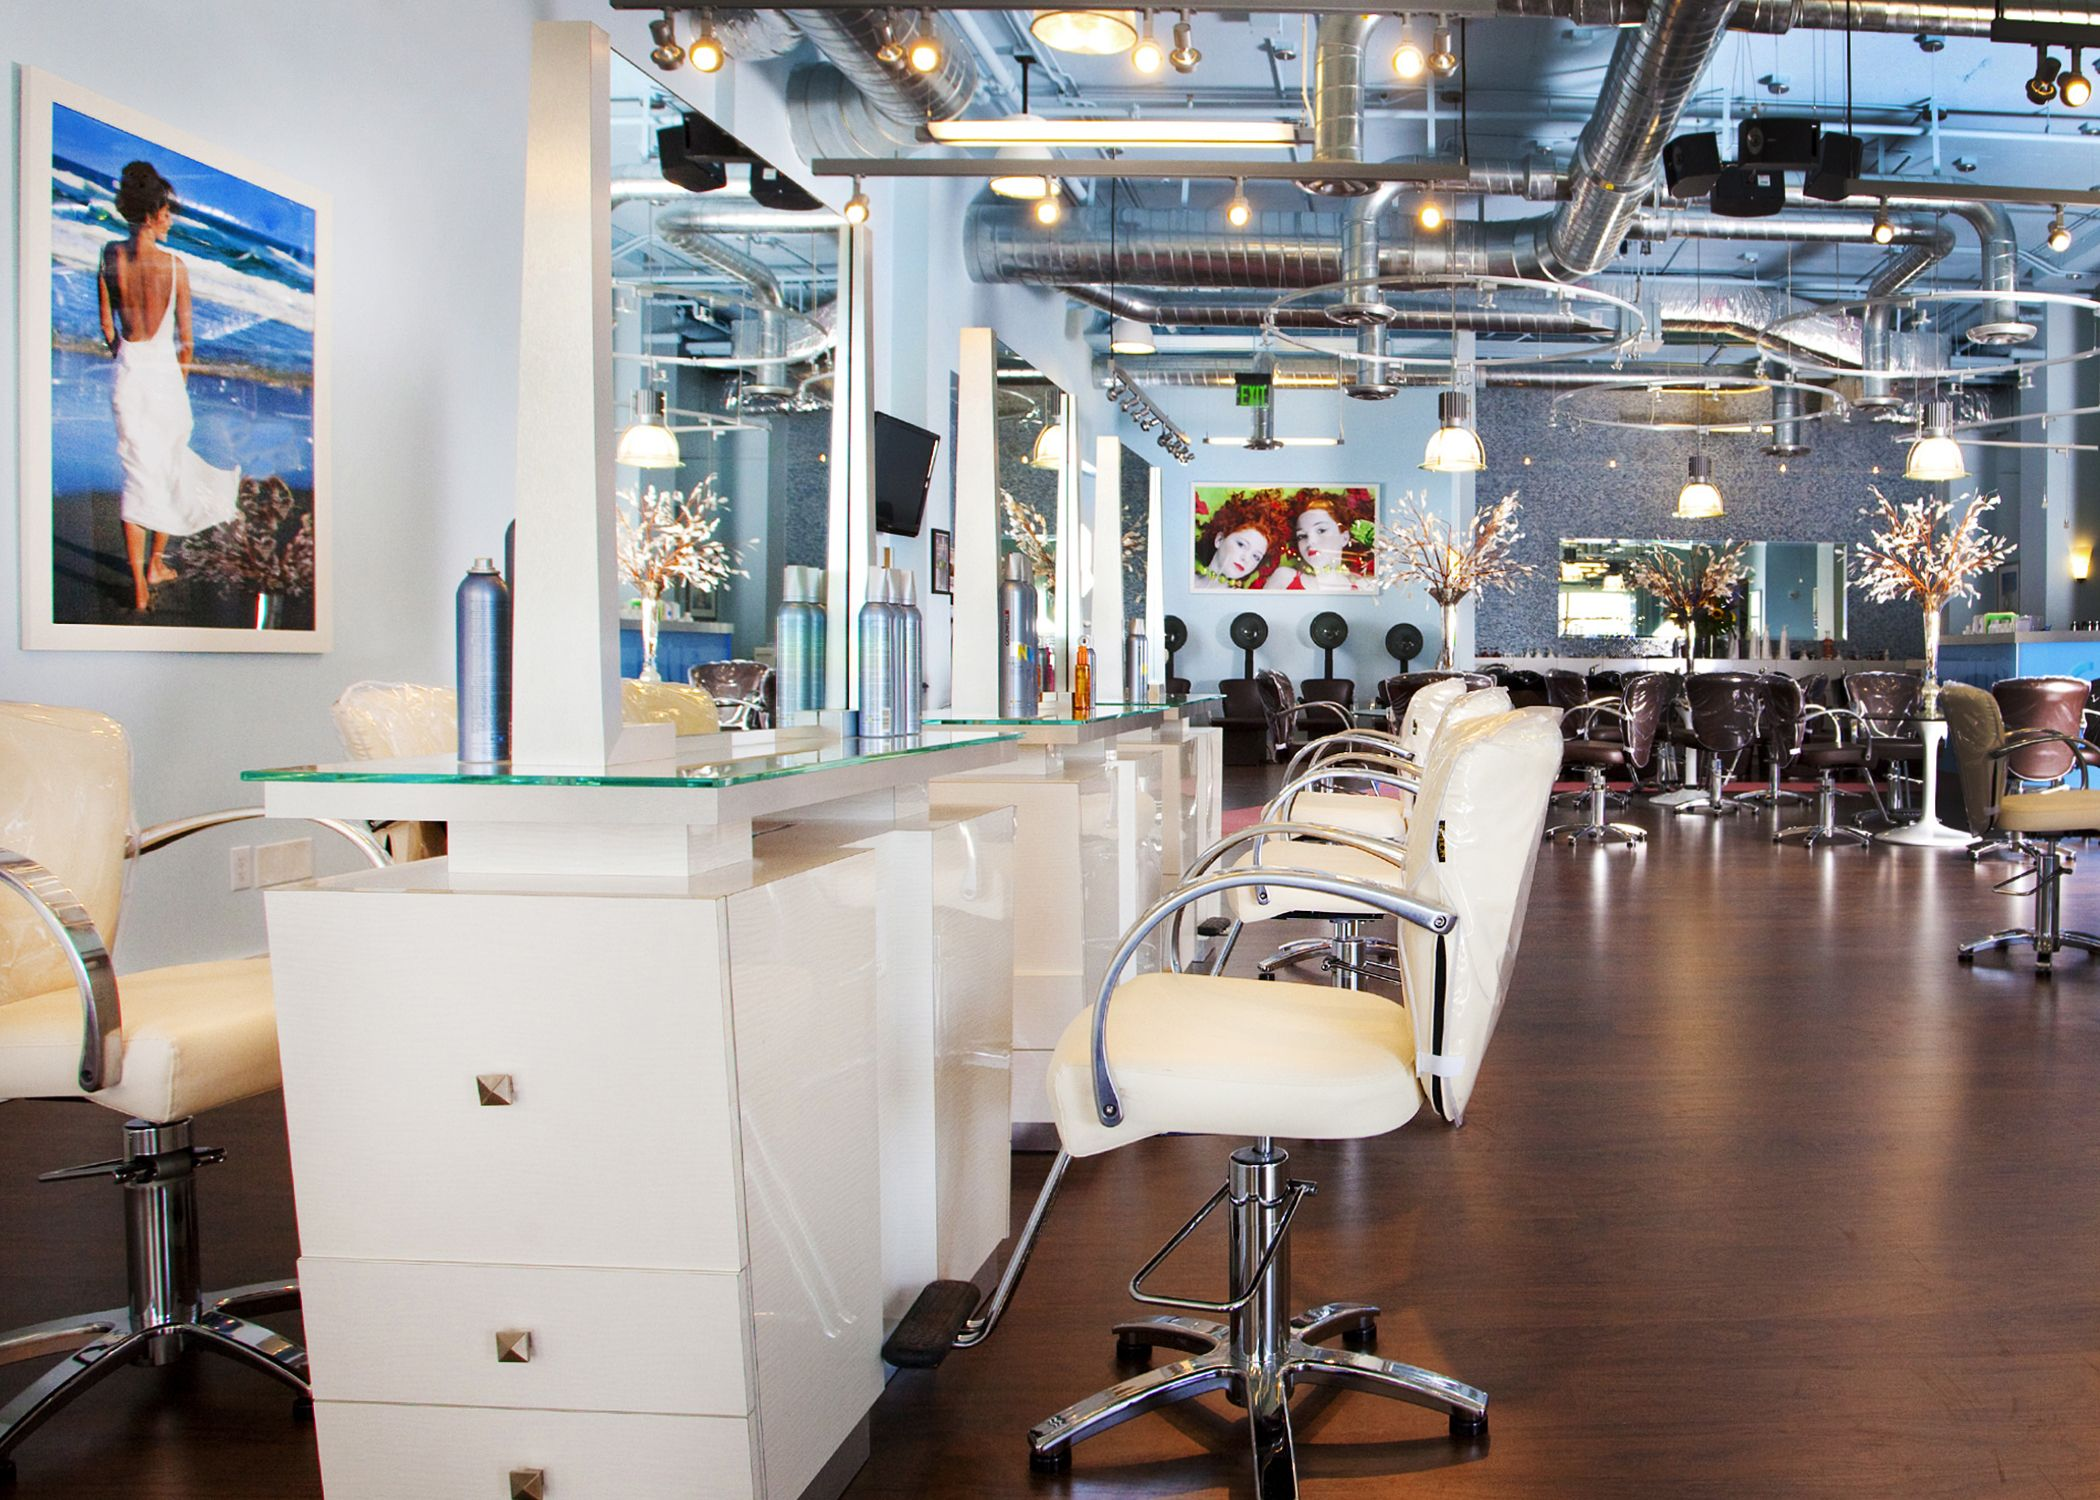 1000+ images about Hair salons on Pinterest | Waiting area ...